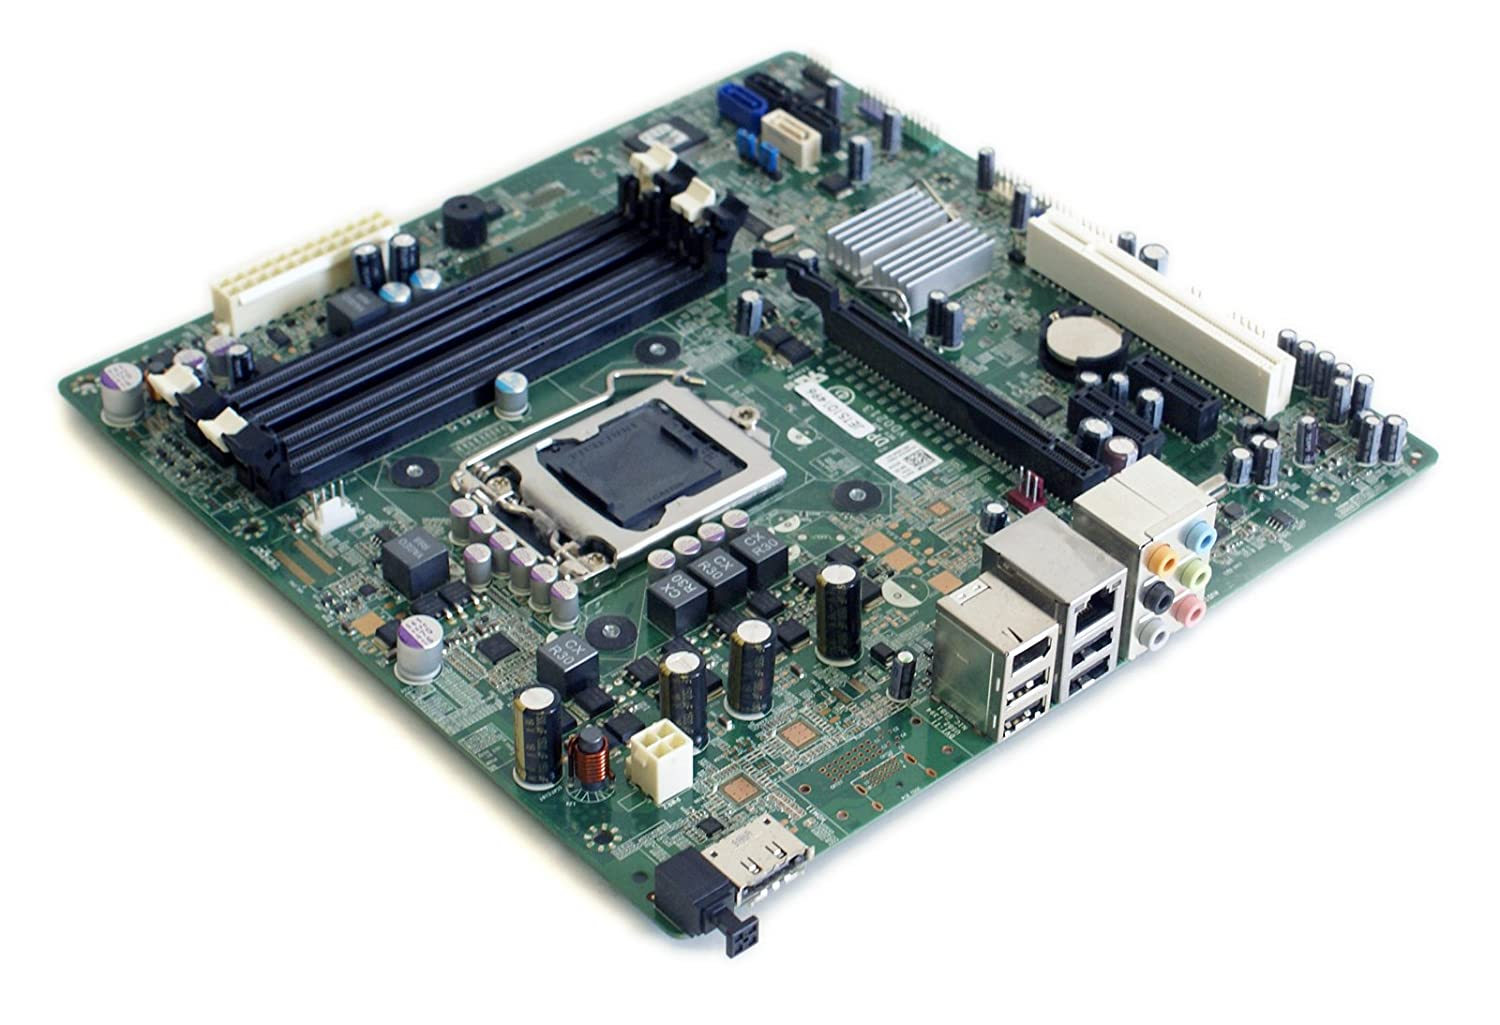 71p63GidKOL._SL1500_ amazon com genuine x231r,0x231r dell motherboard mainboard for  at readyjetset.co